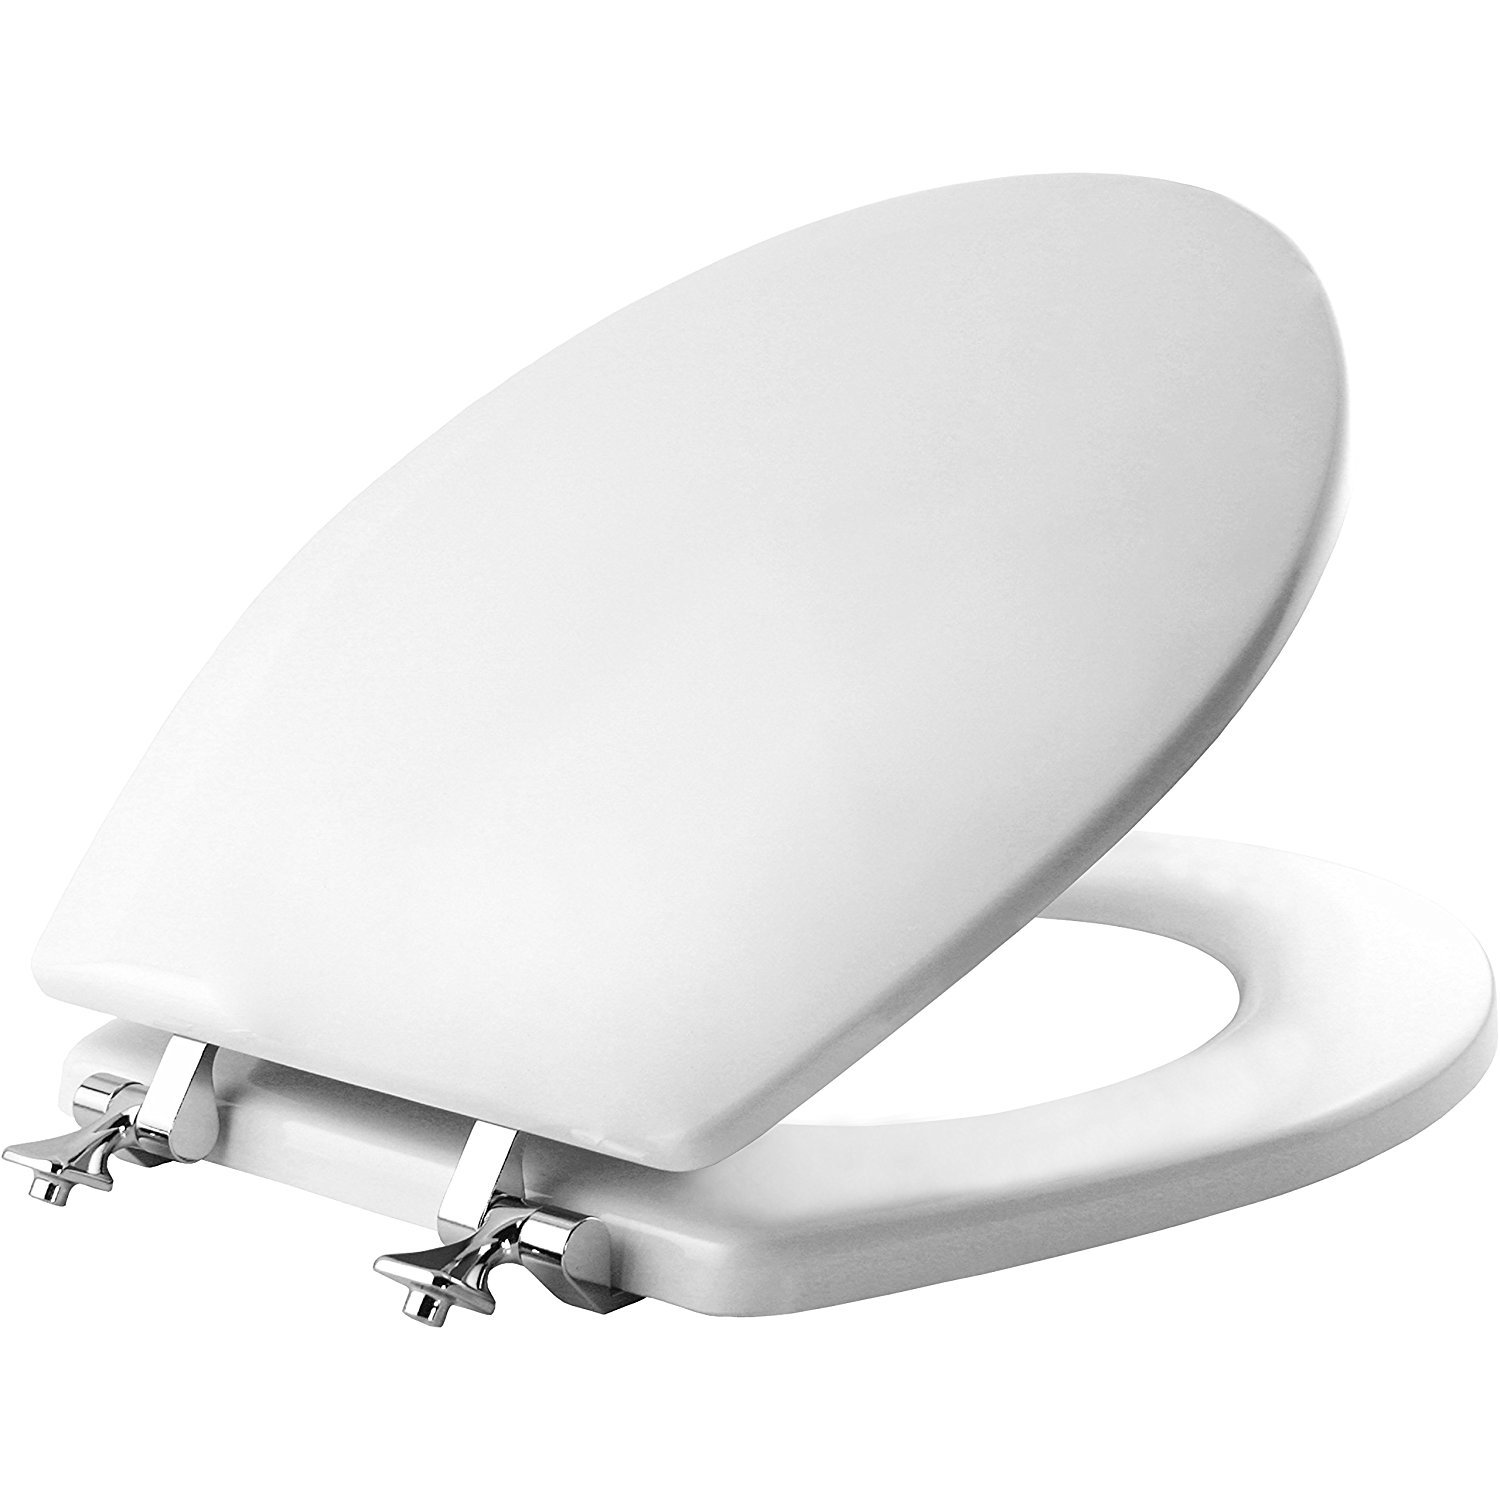 Mayfair Molded Wood Toilet Seat featuring STA-TITE Seat Fastening System & Chrome Hinges, Round, White, 44CP 000